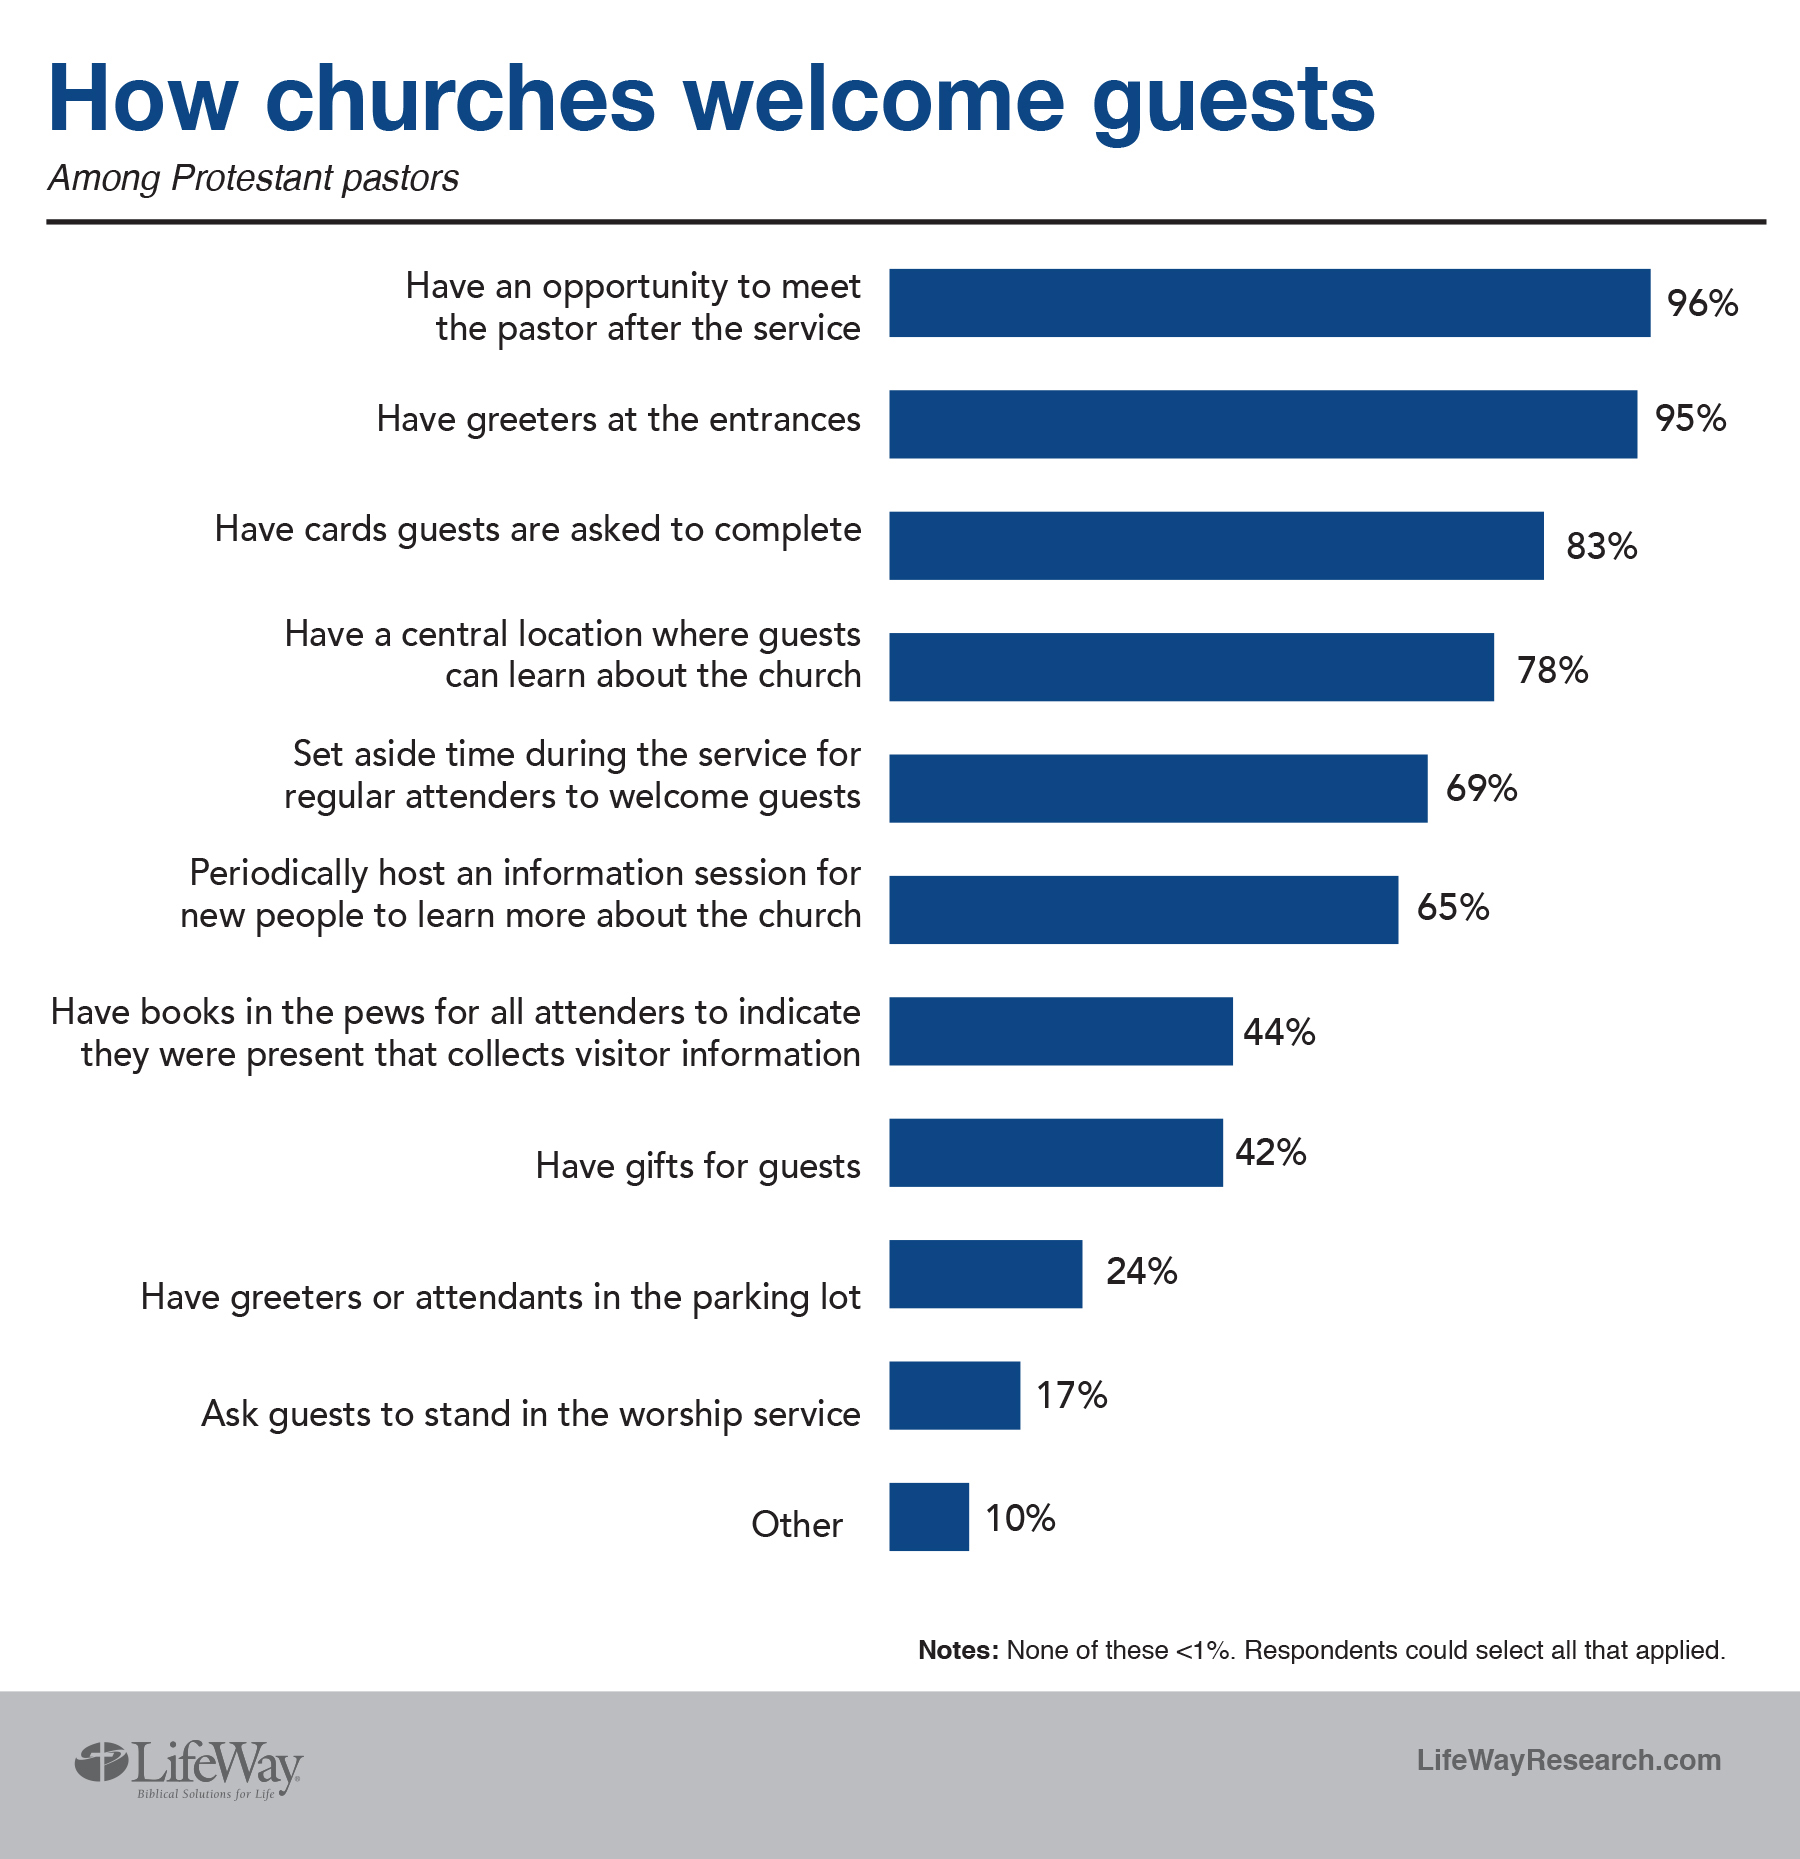 BP How churches welcome guests